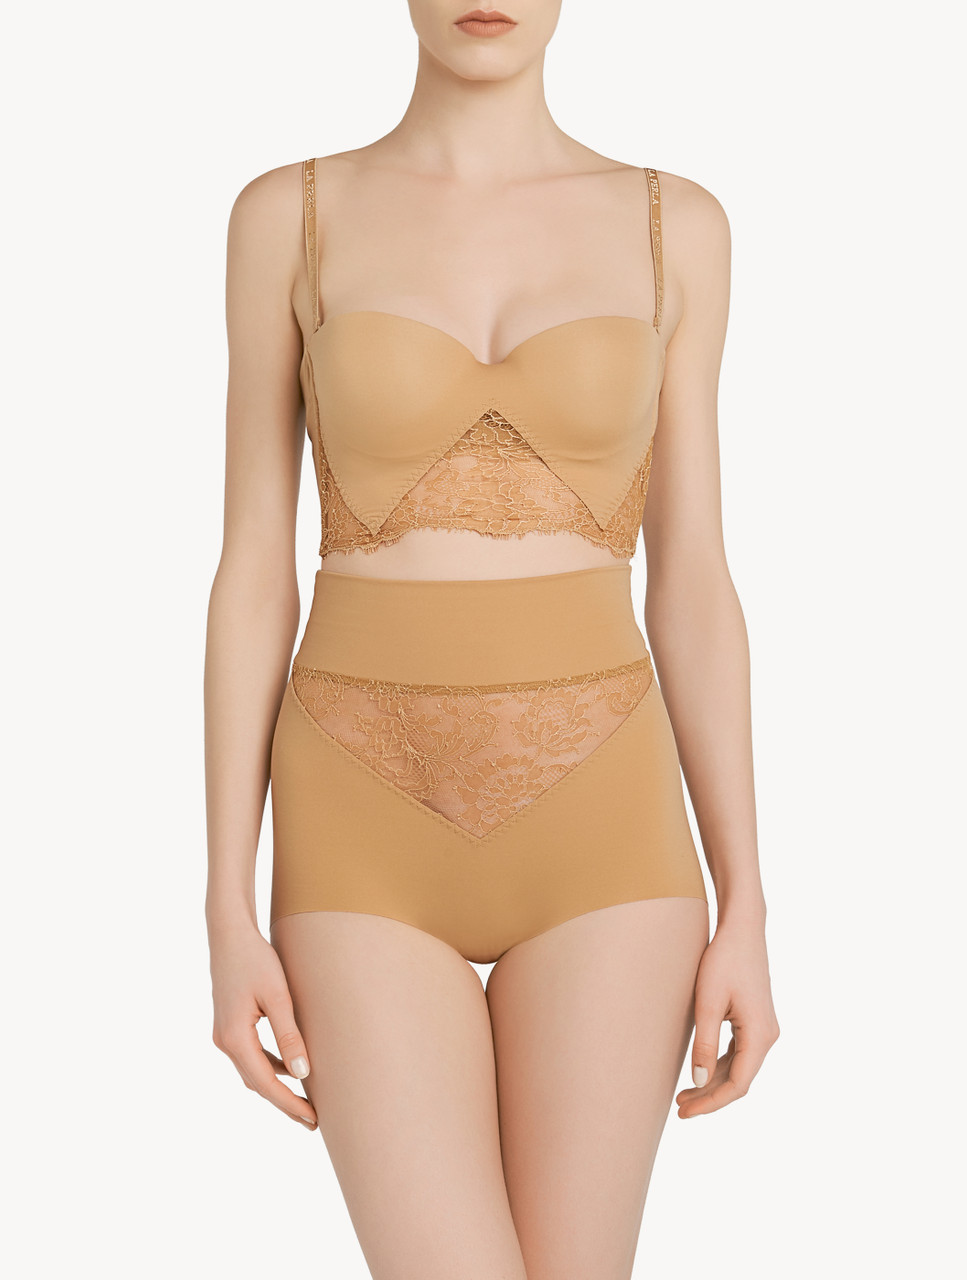 Lace bra and tanga set in powder pink colored Chantilly lace